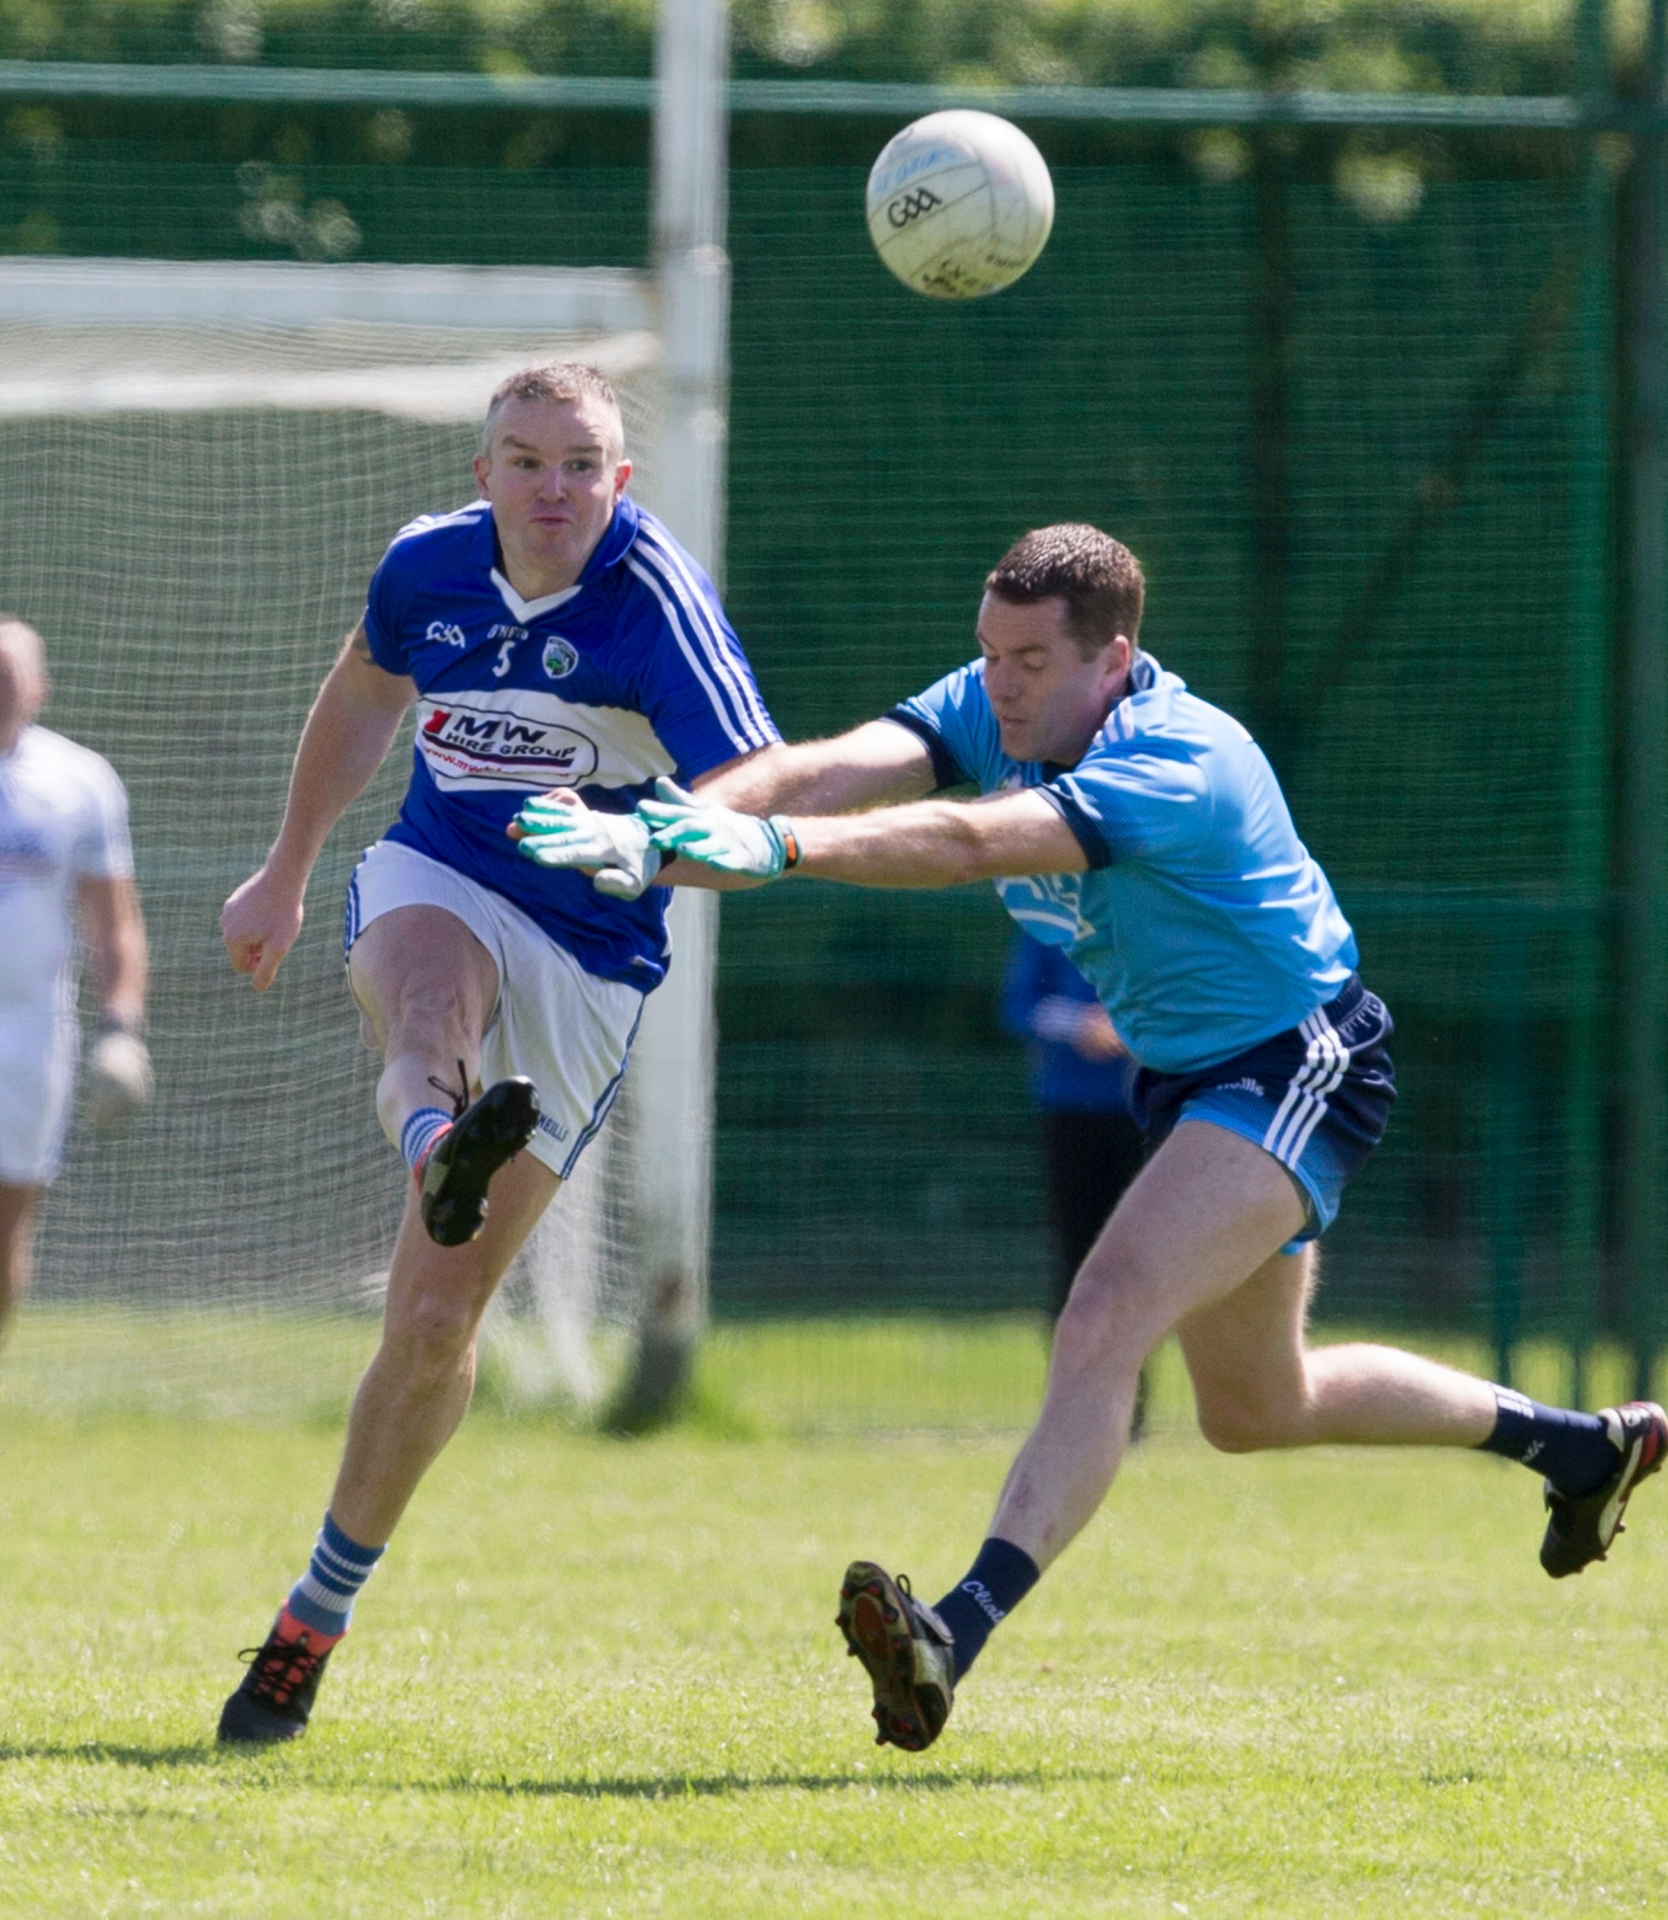 Brian McEvoy clears for Laois against Dublin in the All Ireland Masters Football Championship at Stradbally. Picture: Alf Harvey.